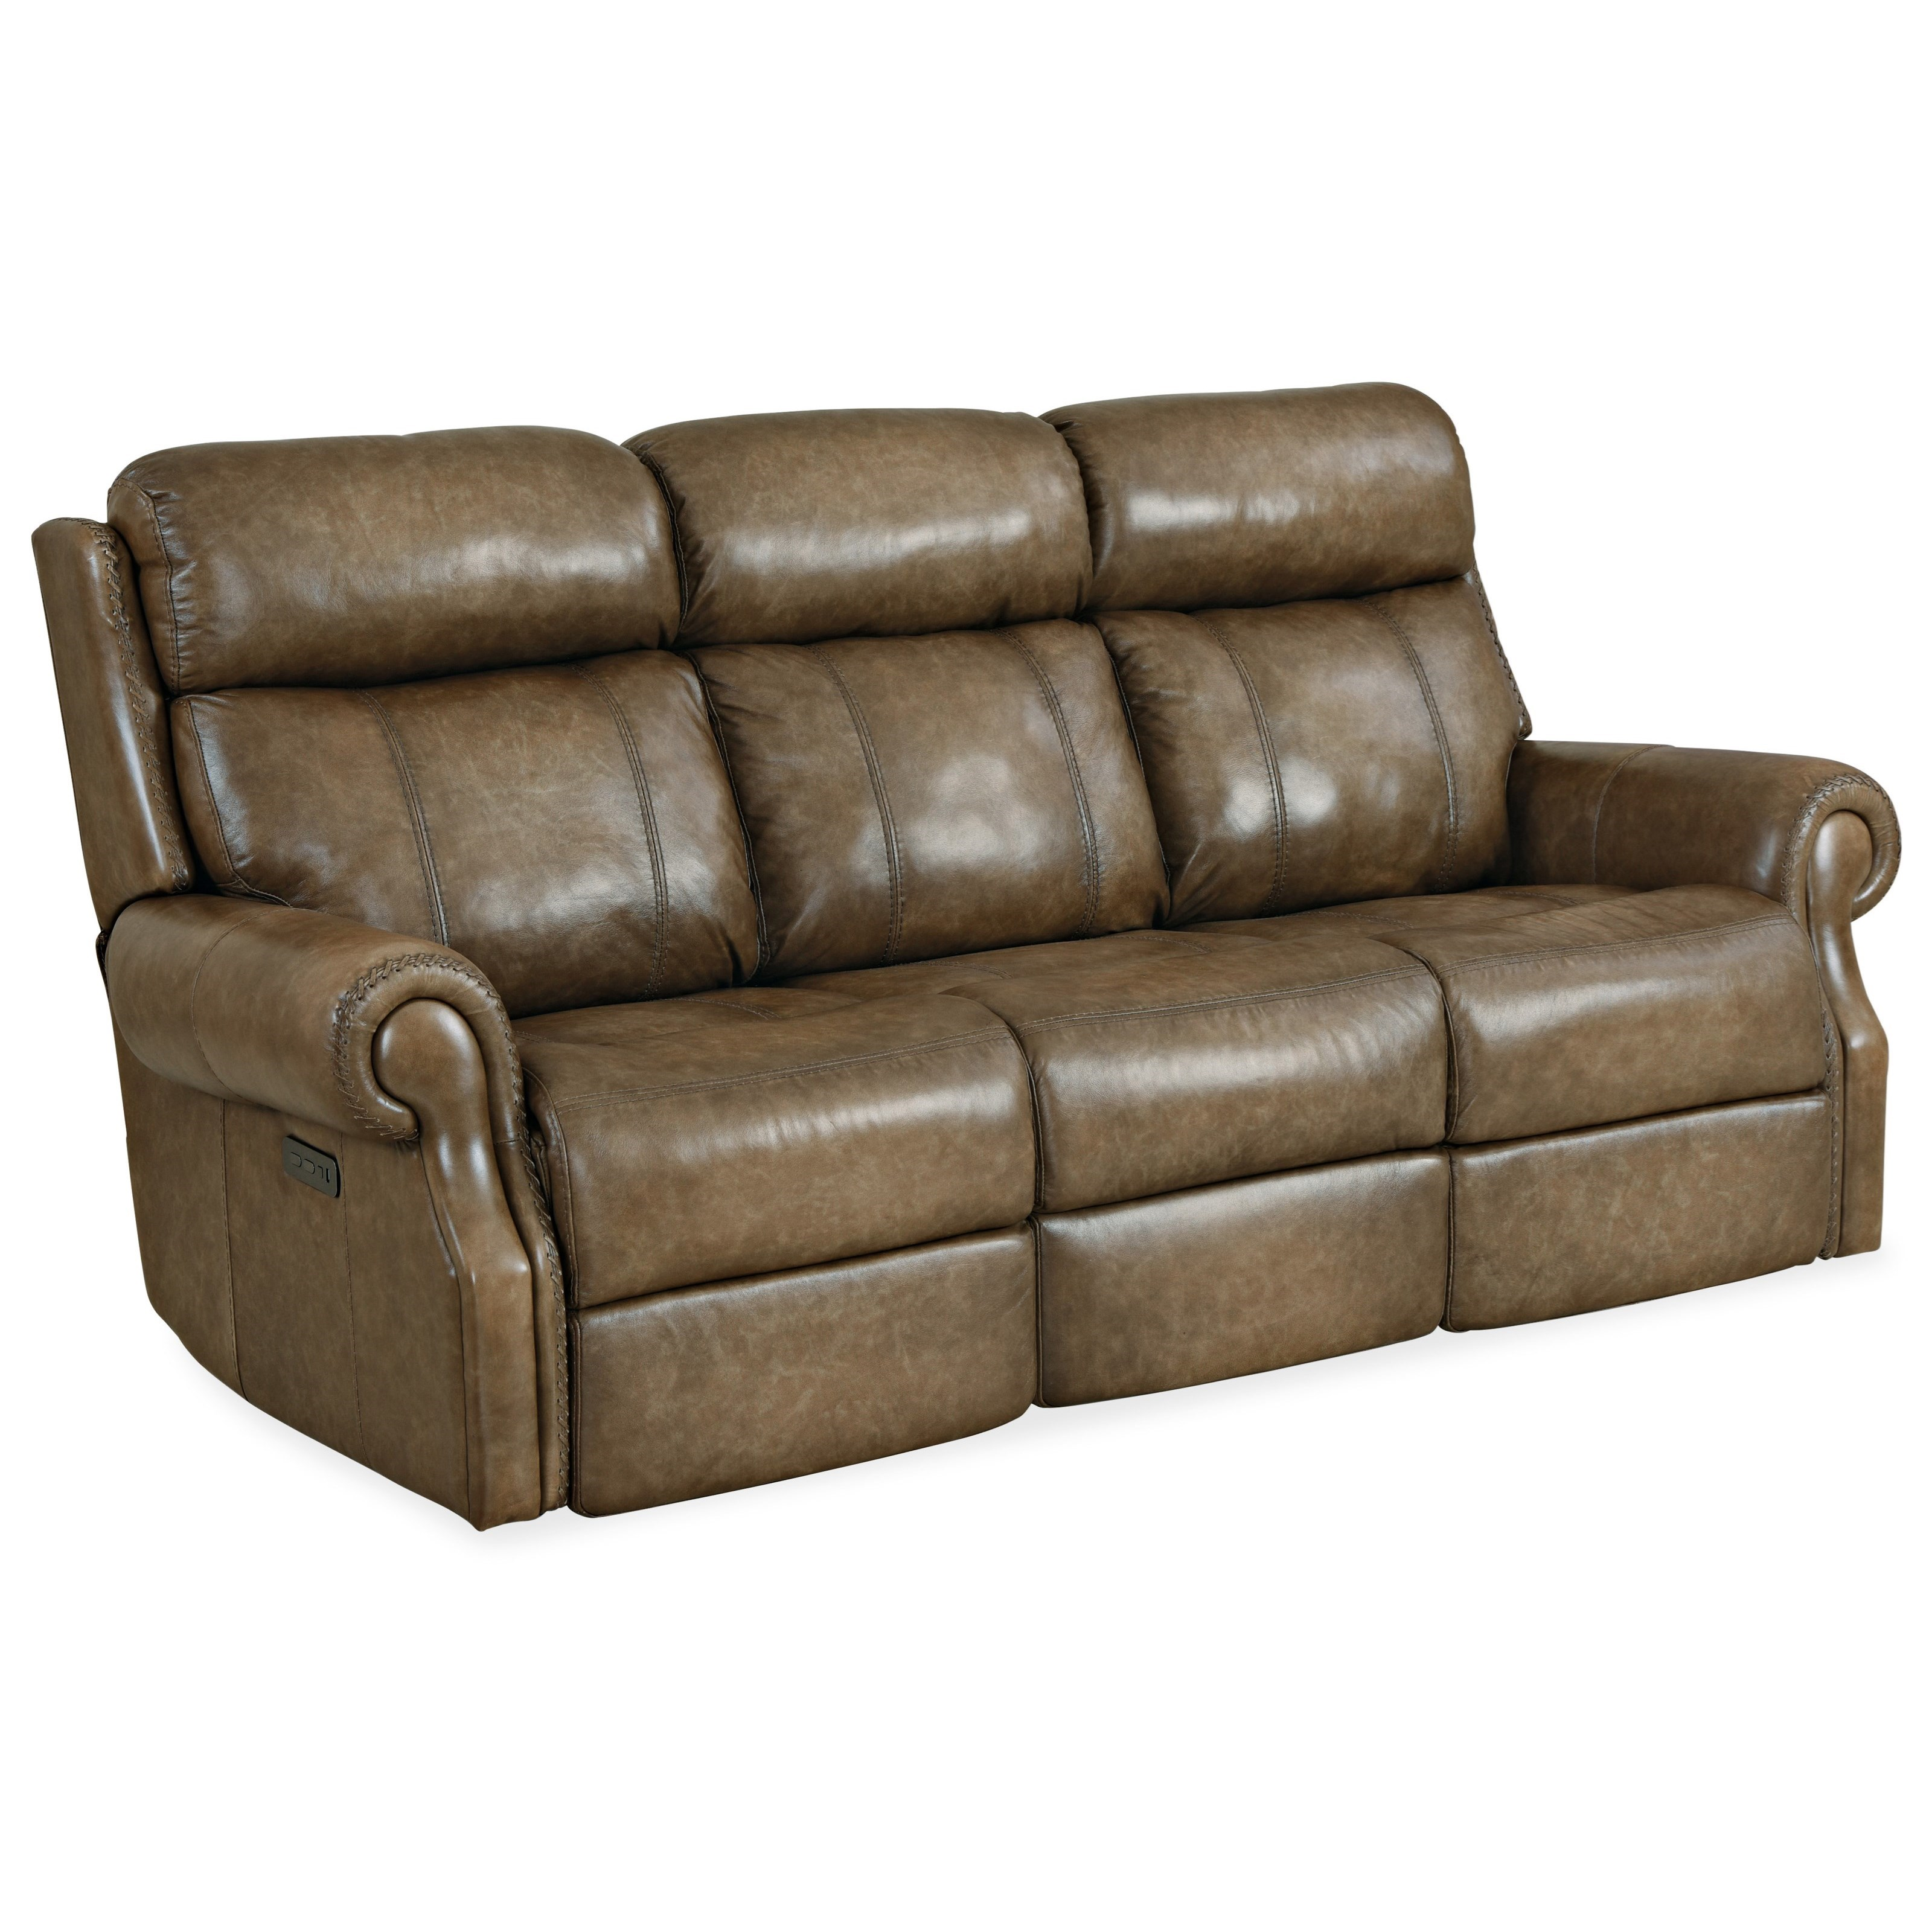 Brooks Power Sofa w/ Power Headrest by Hooker Furniture at Miller Waldrop Furniture and Decor